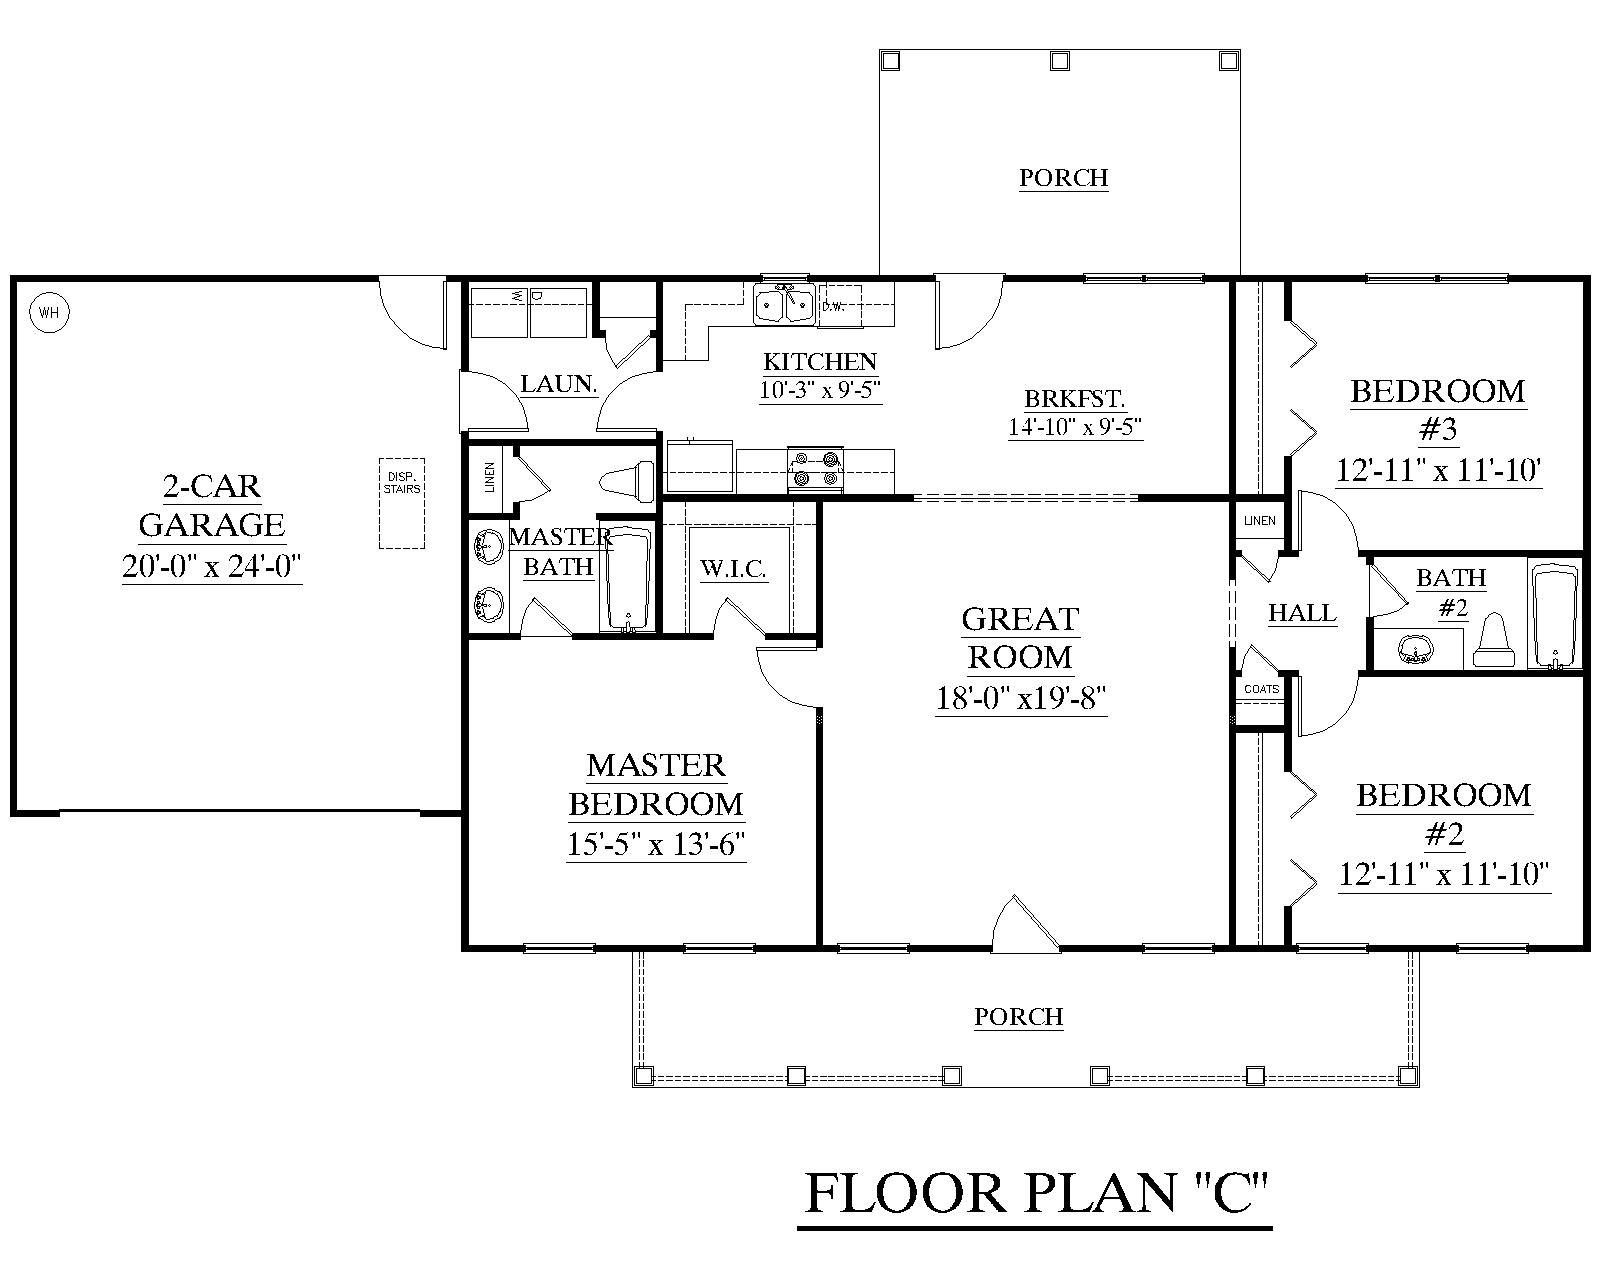 House plan 1500 c the james c attractive one story ranch for Ranch layout plans